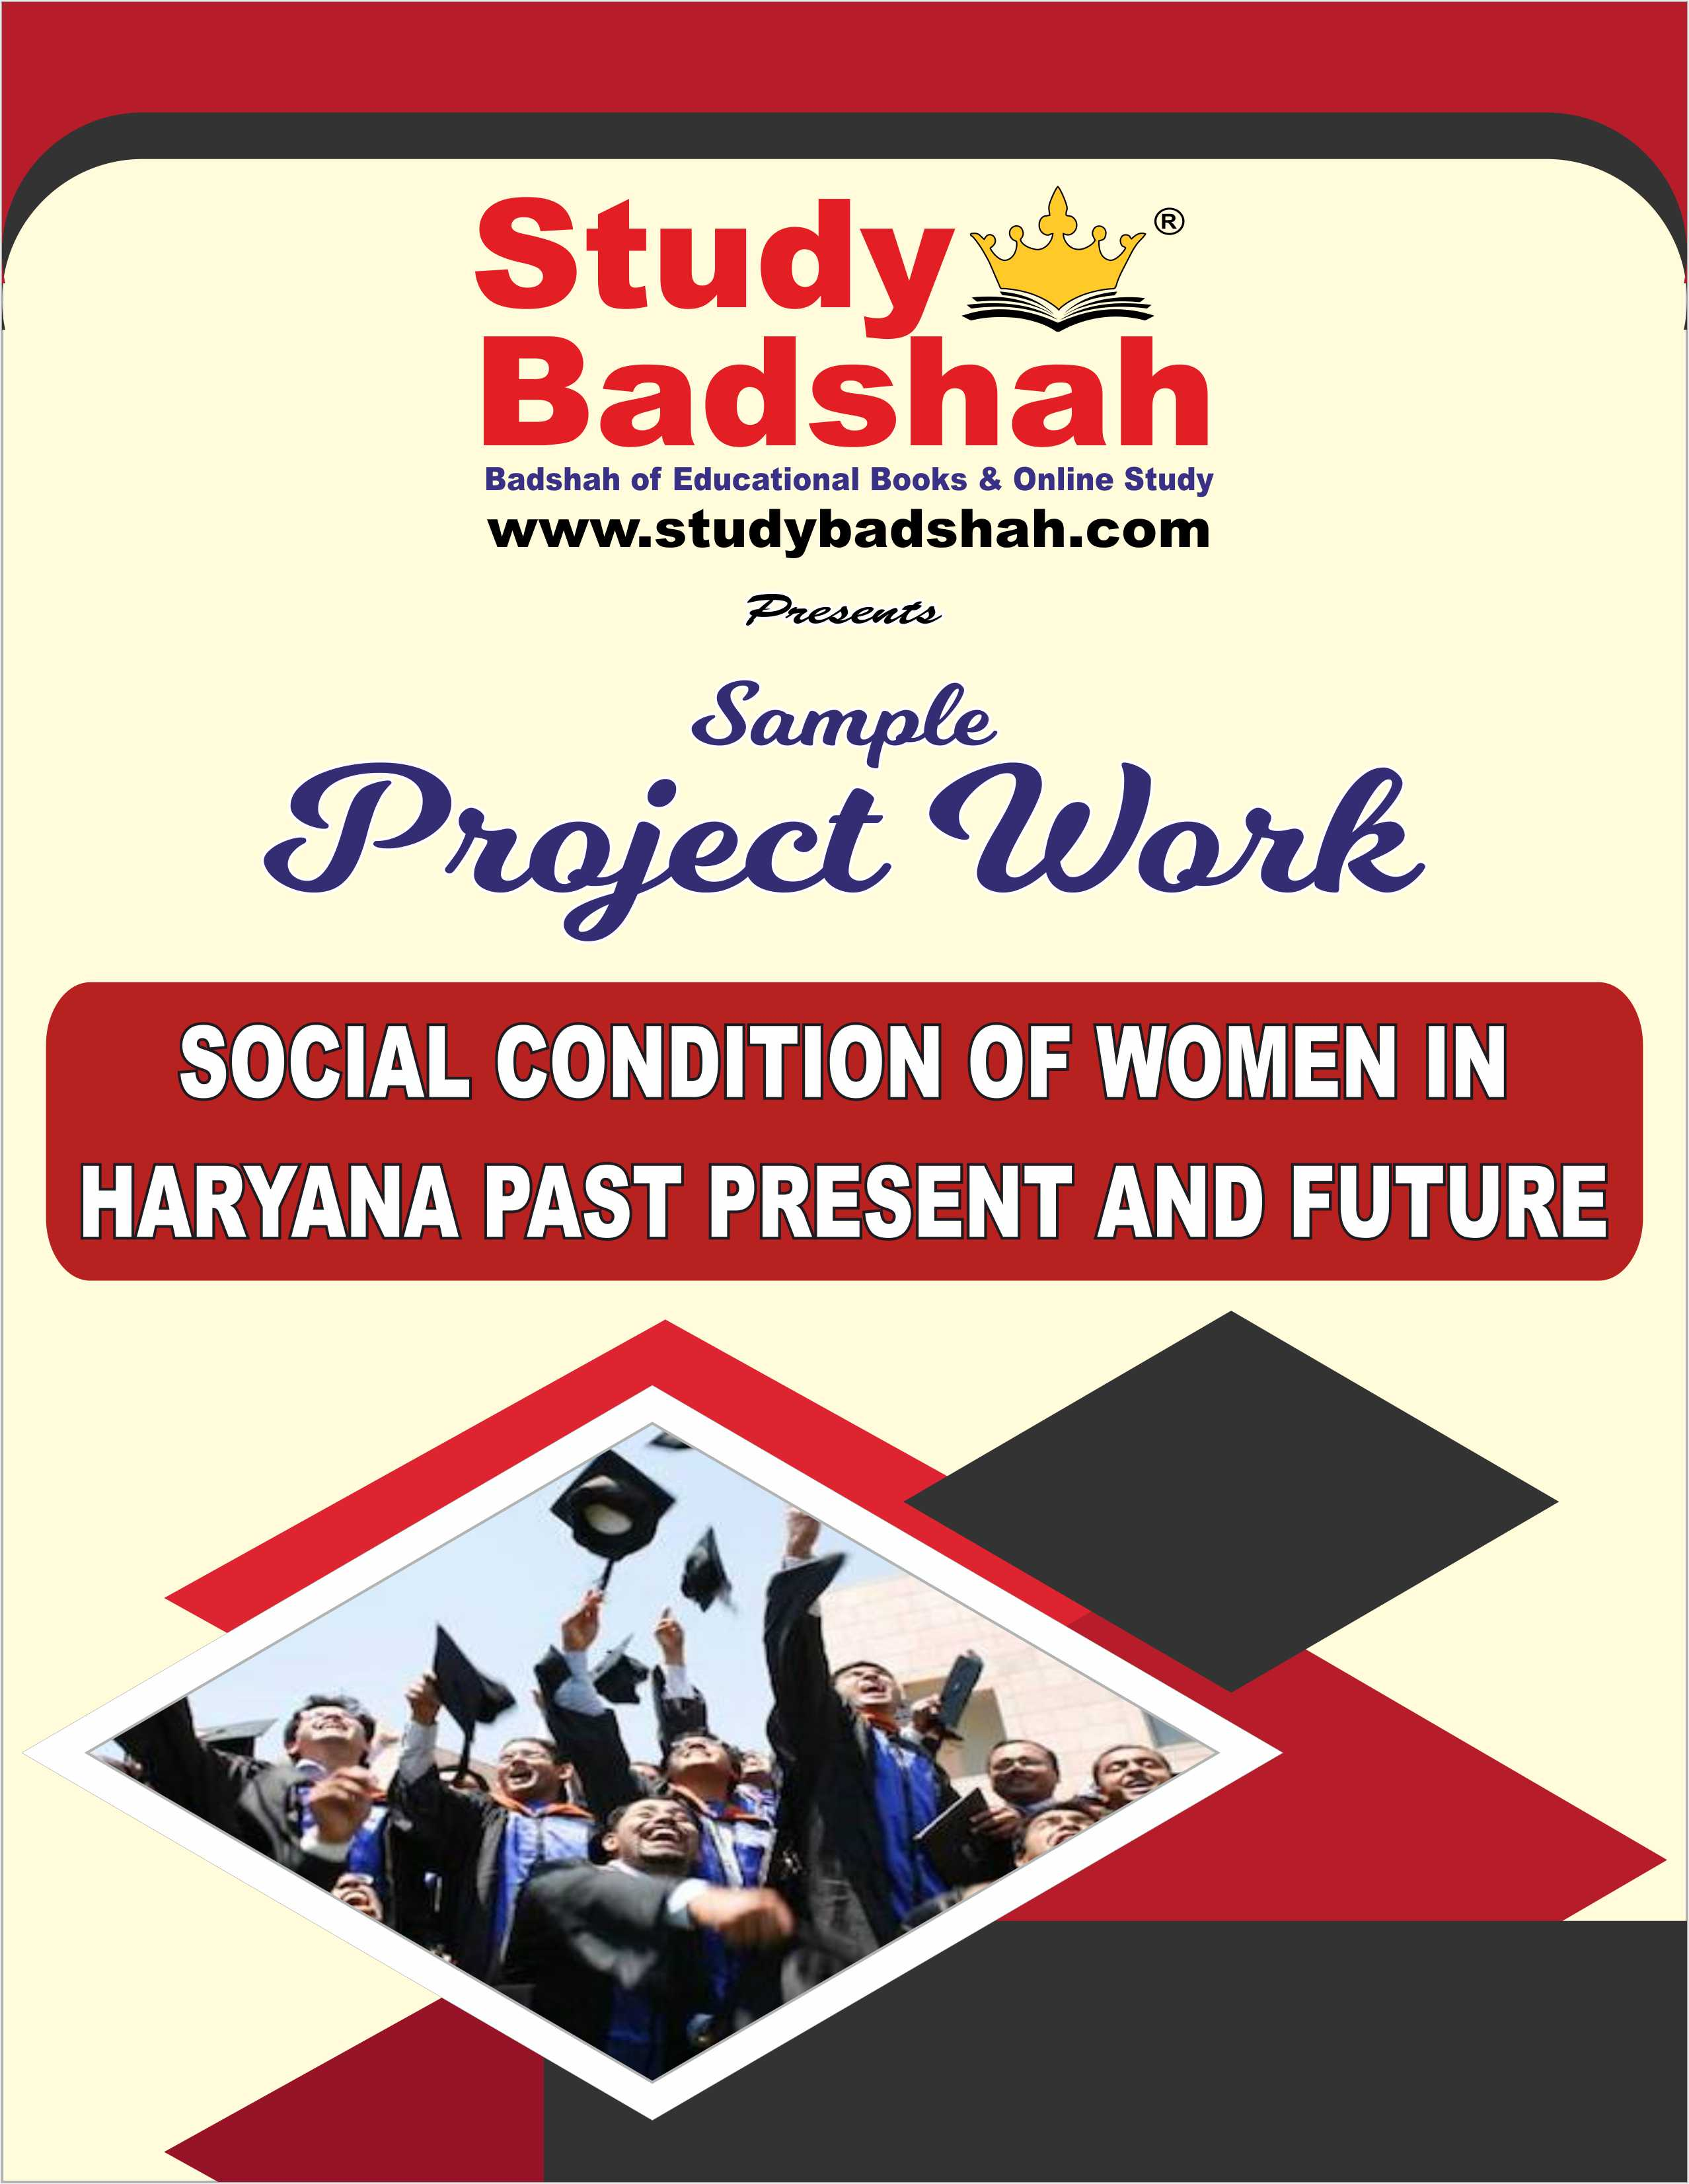 SOCIAL CONDITION OF WOMEN IN HARYANA PAST PRESENT AND FUTURE